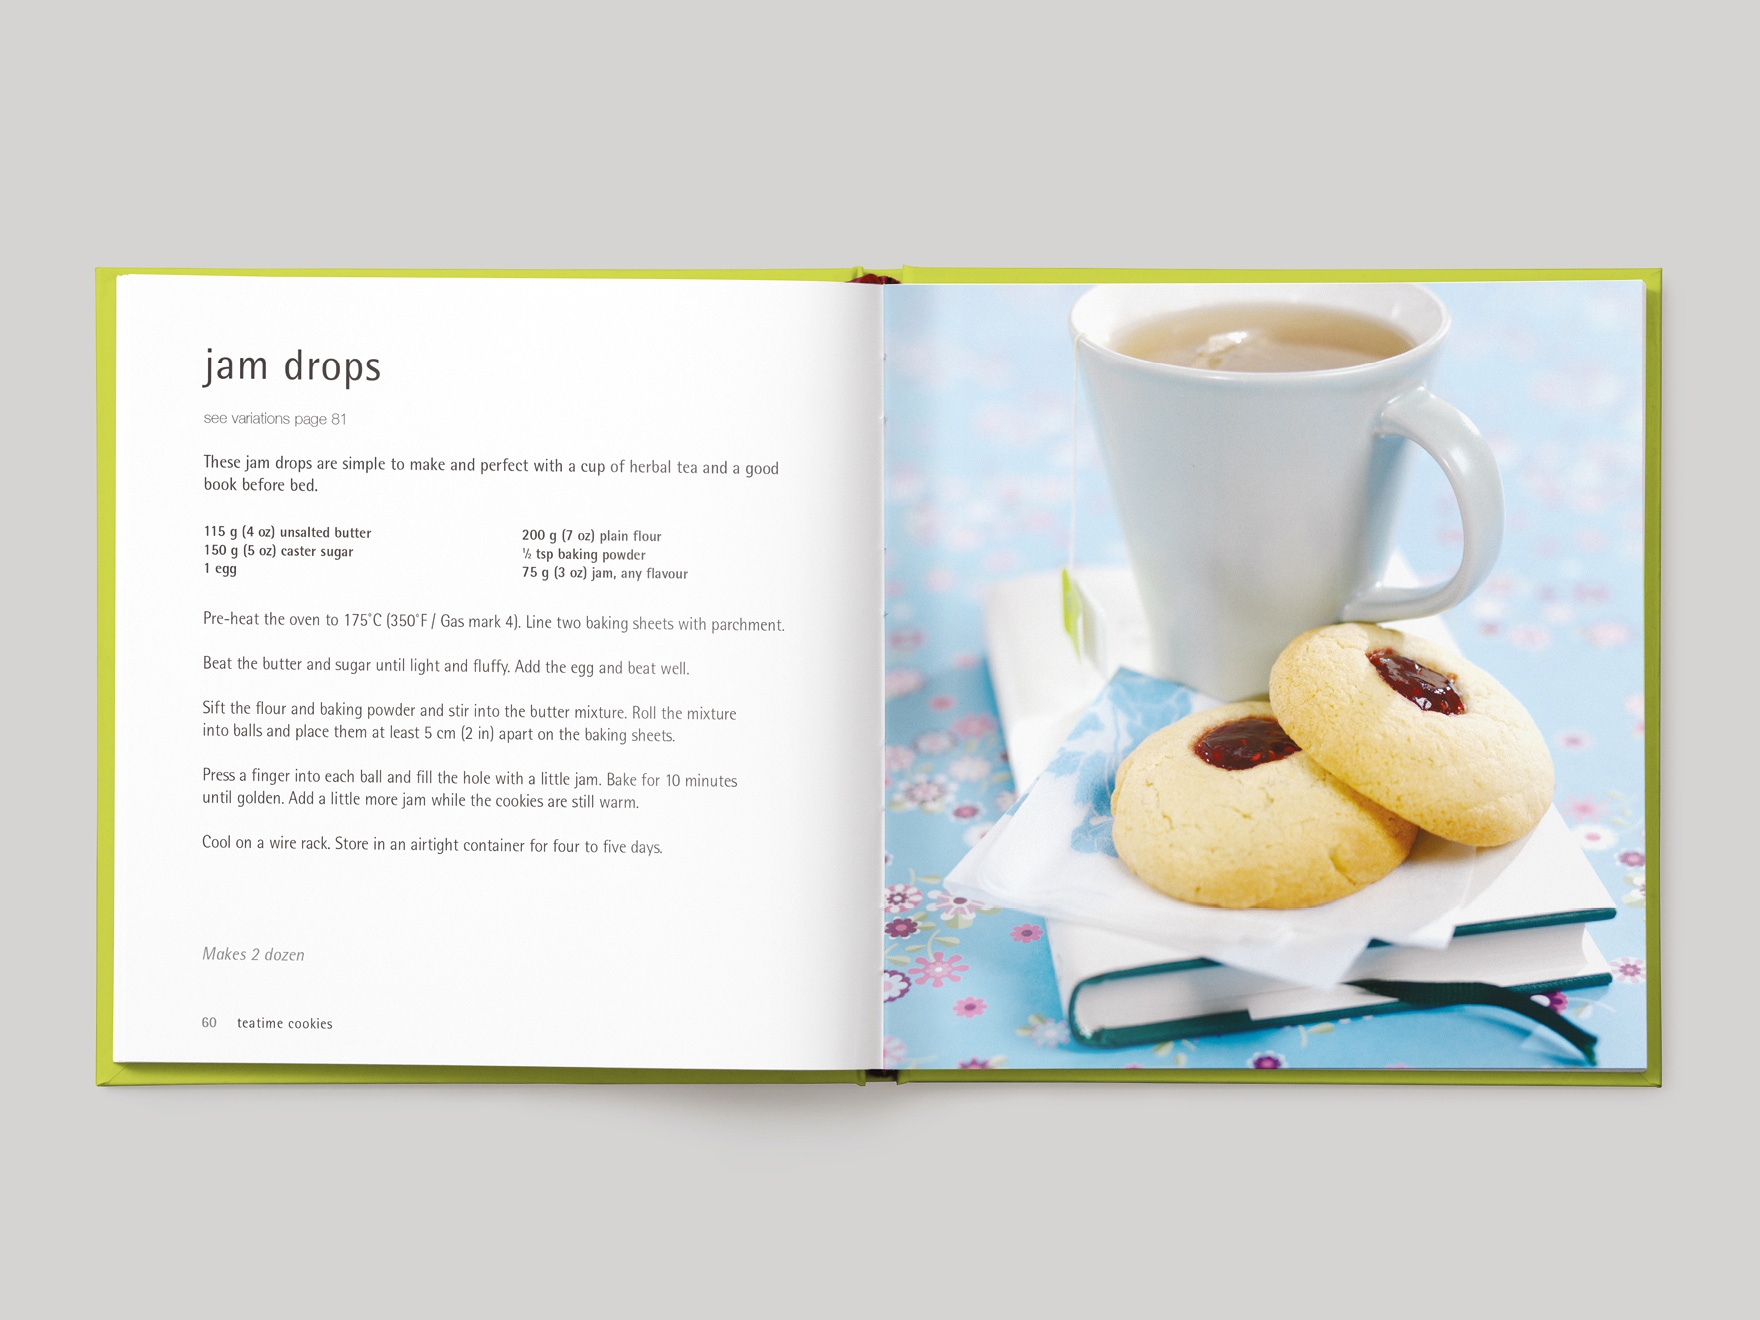 Inside pages from 500 Cookies showing a recipe for jam drop cookies